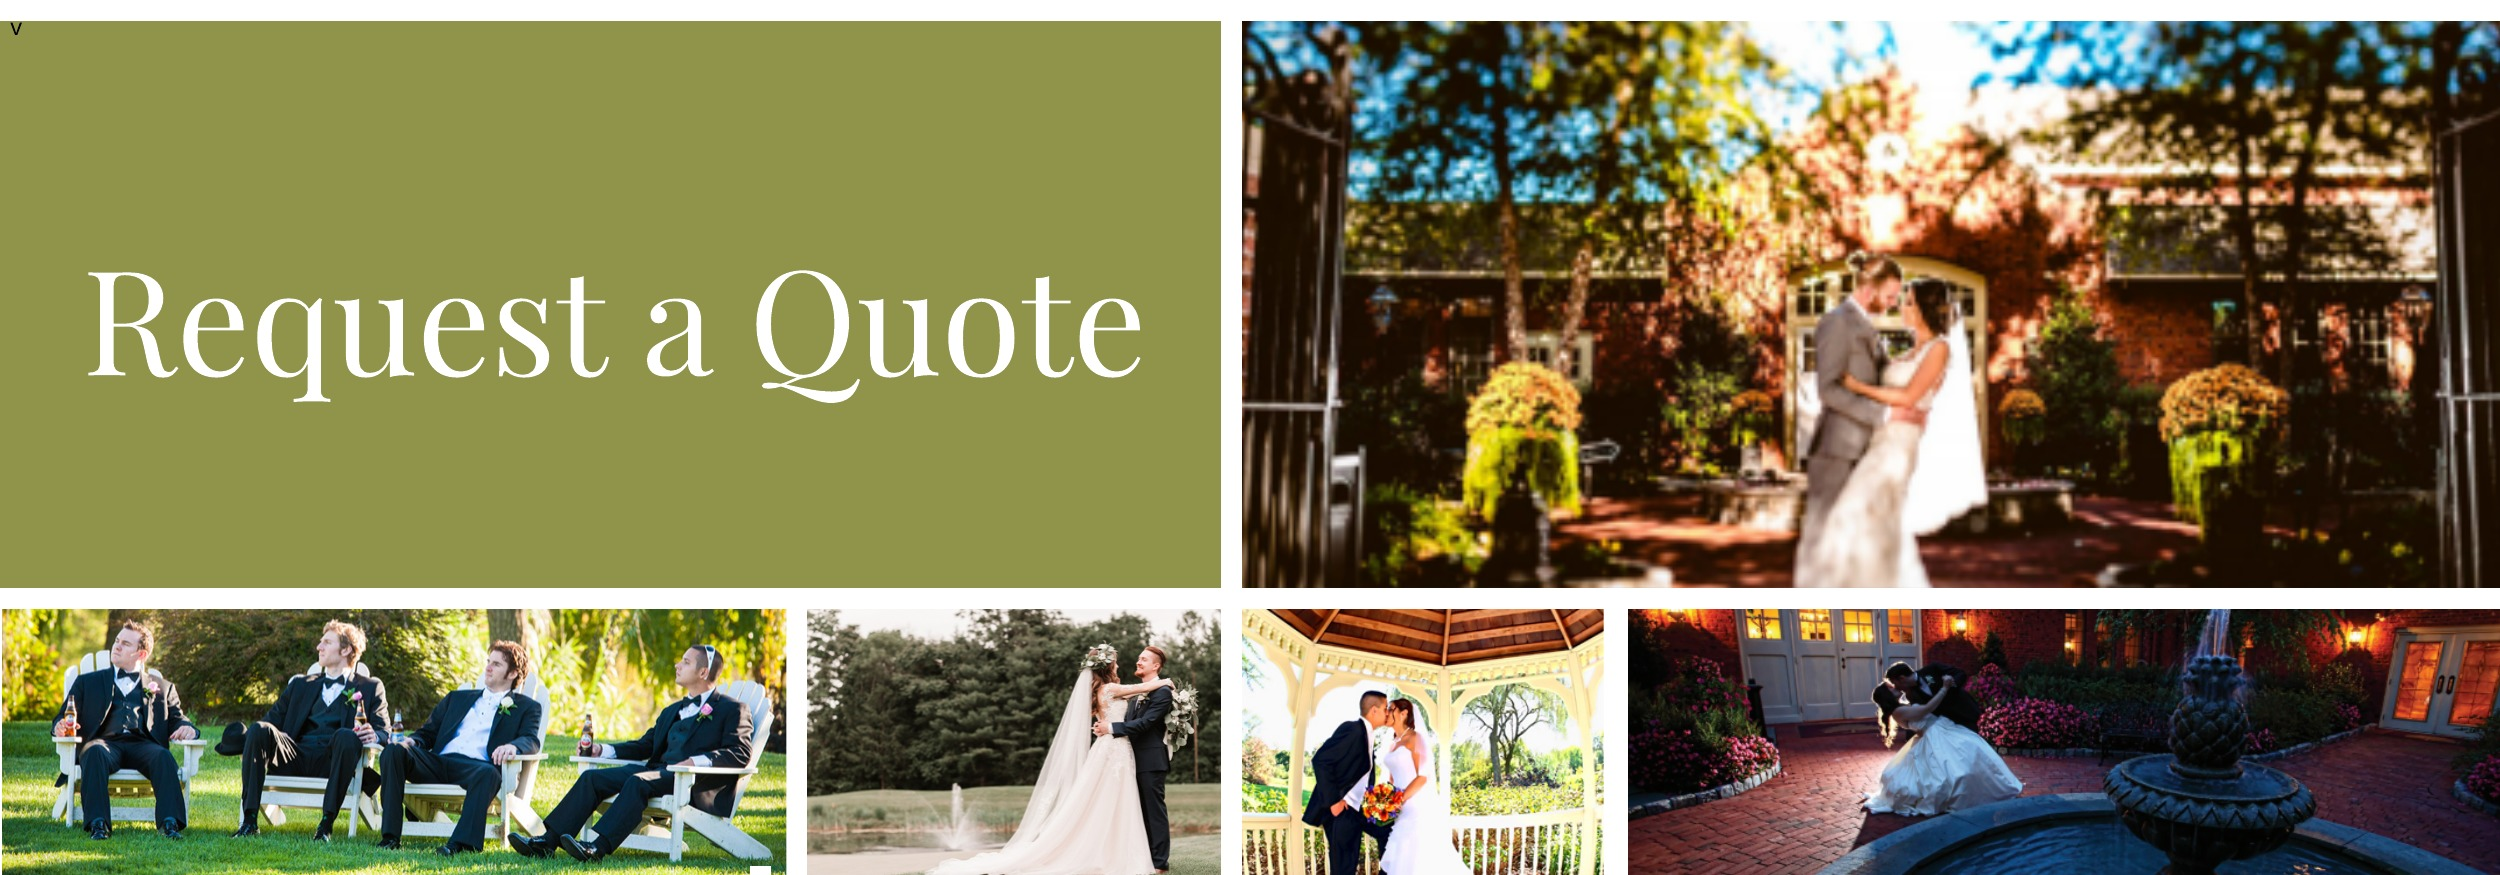 request quote for weddings at Talamore